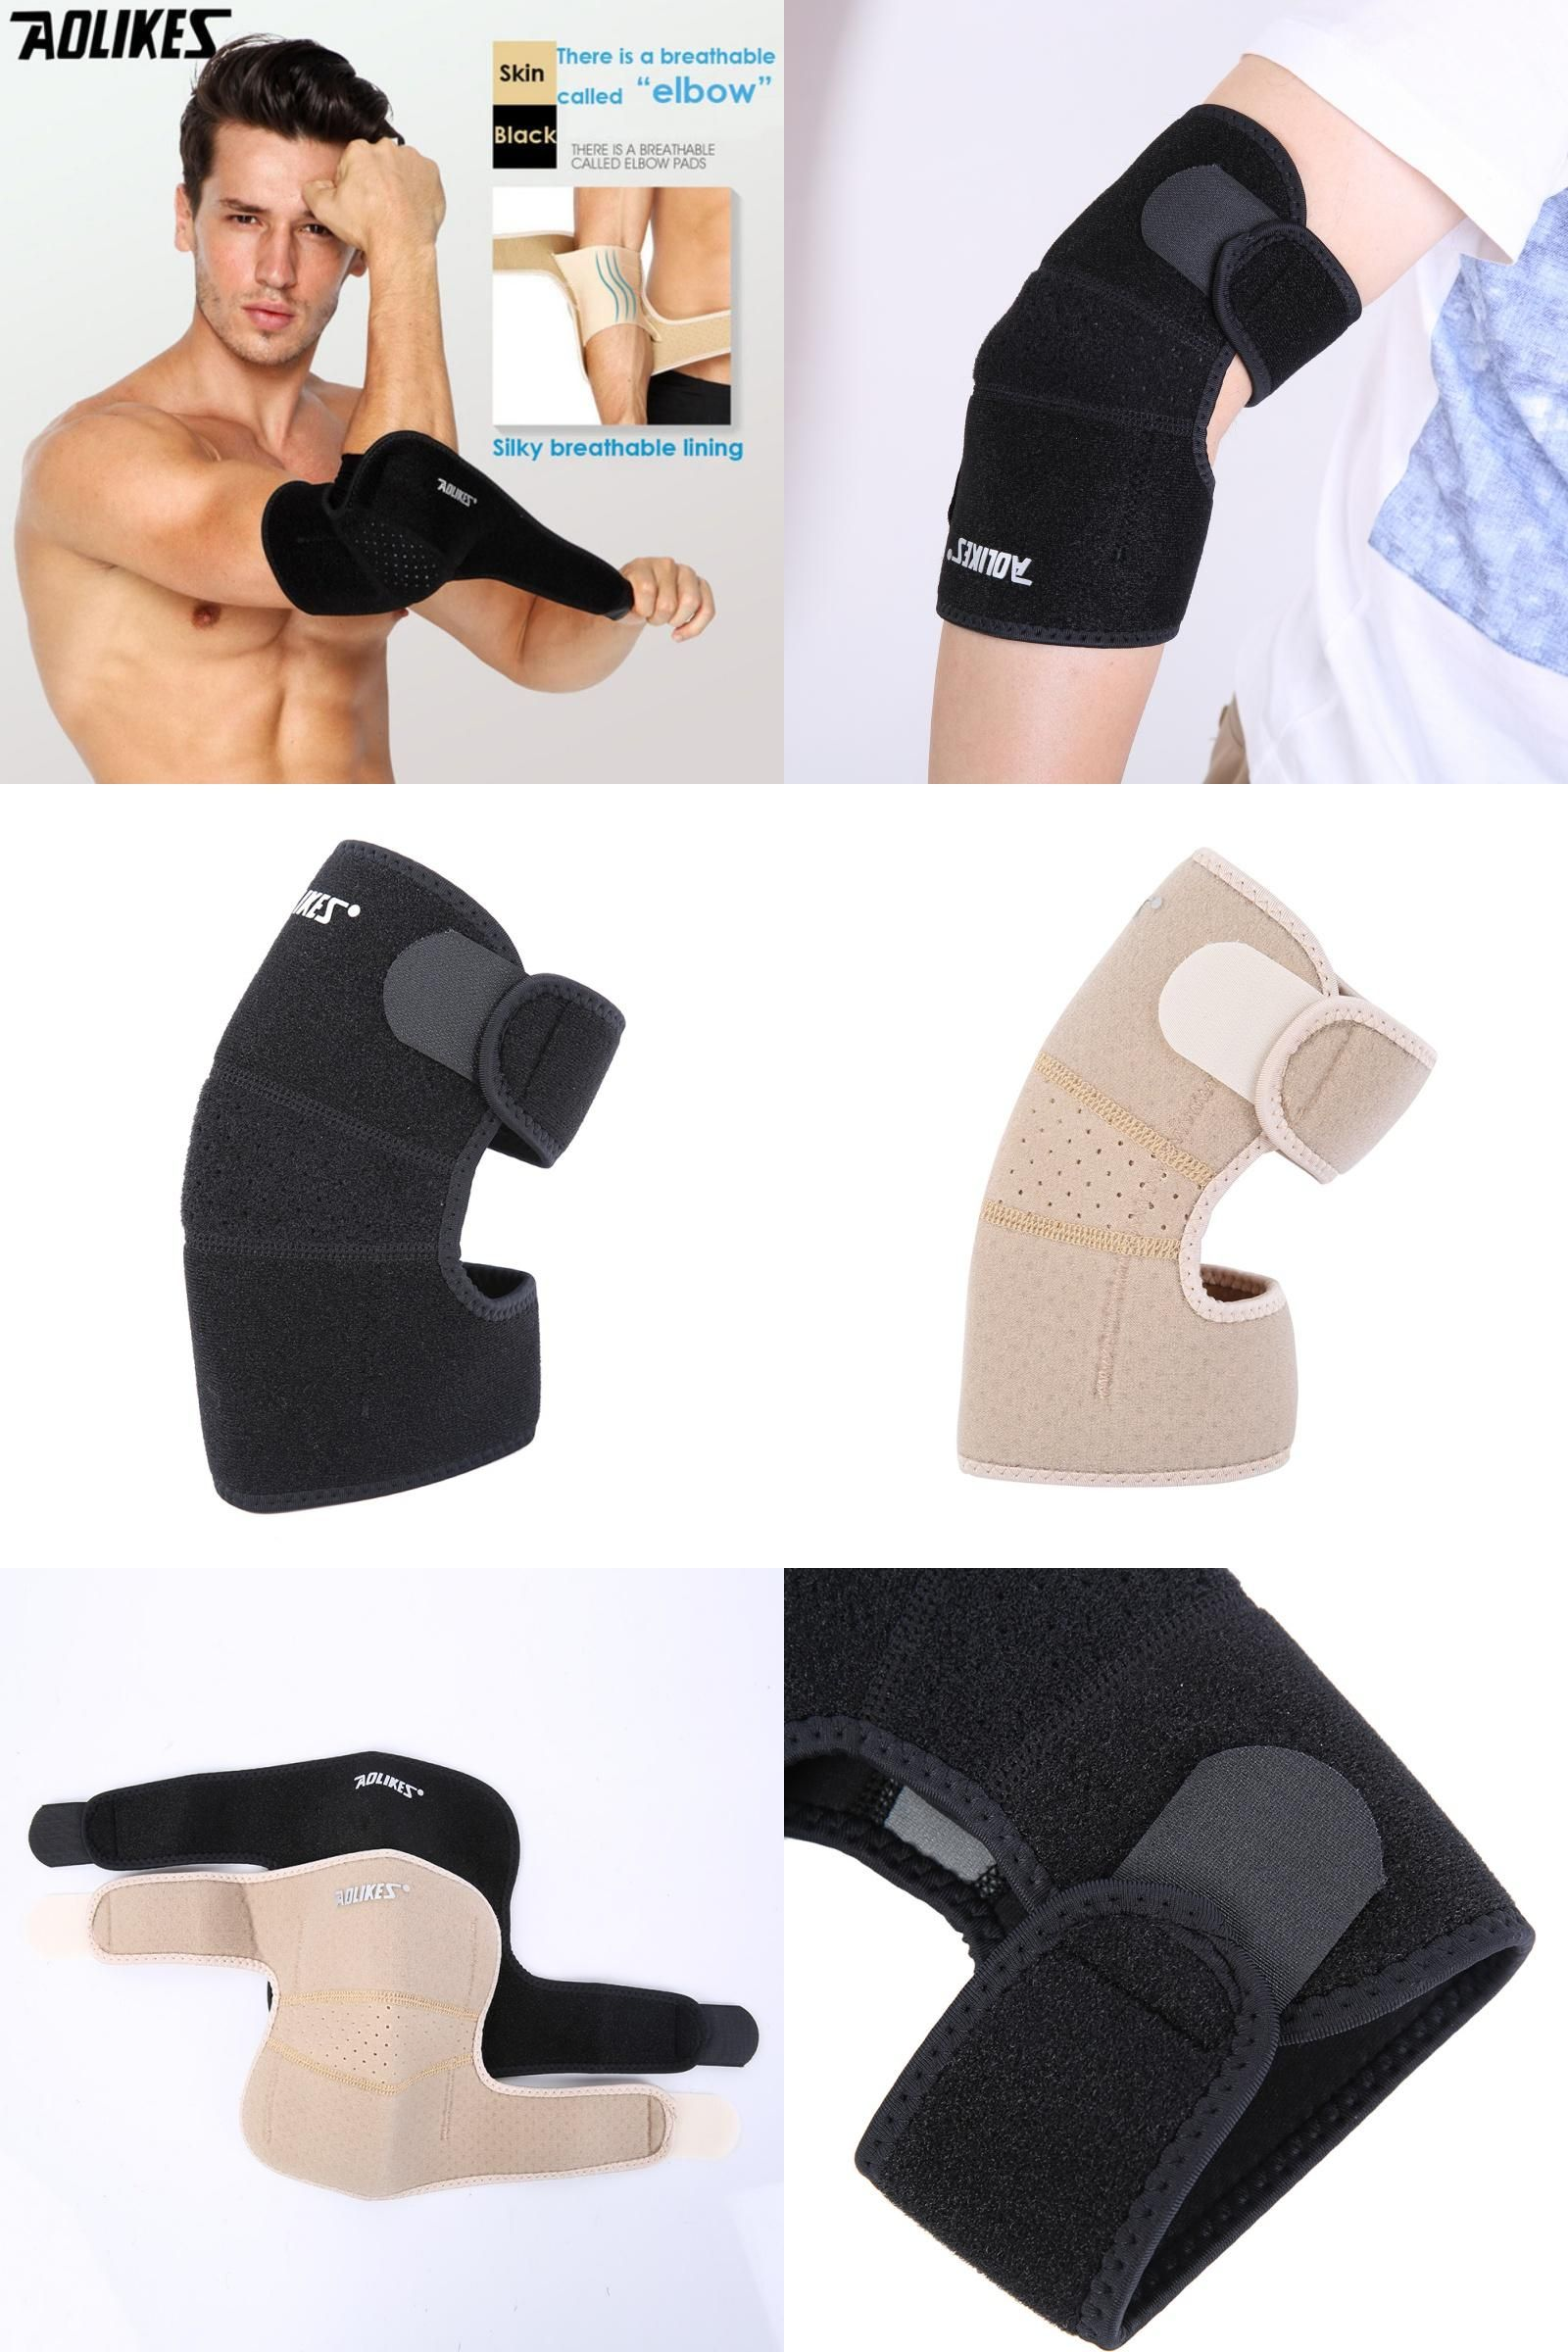 Visit To Buy Aolikes 1pcs Sport Safety Elastic Volleyball Tennis Elbow Brace Sleeve Elbow Pad For Elbow Support Tennis Elbow Brace Elbow Braces Elbow Support